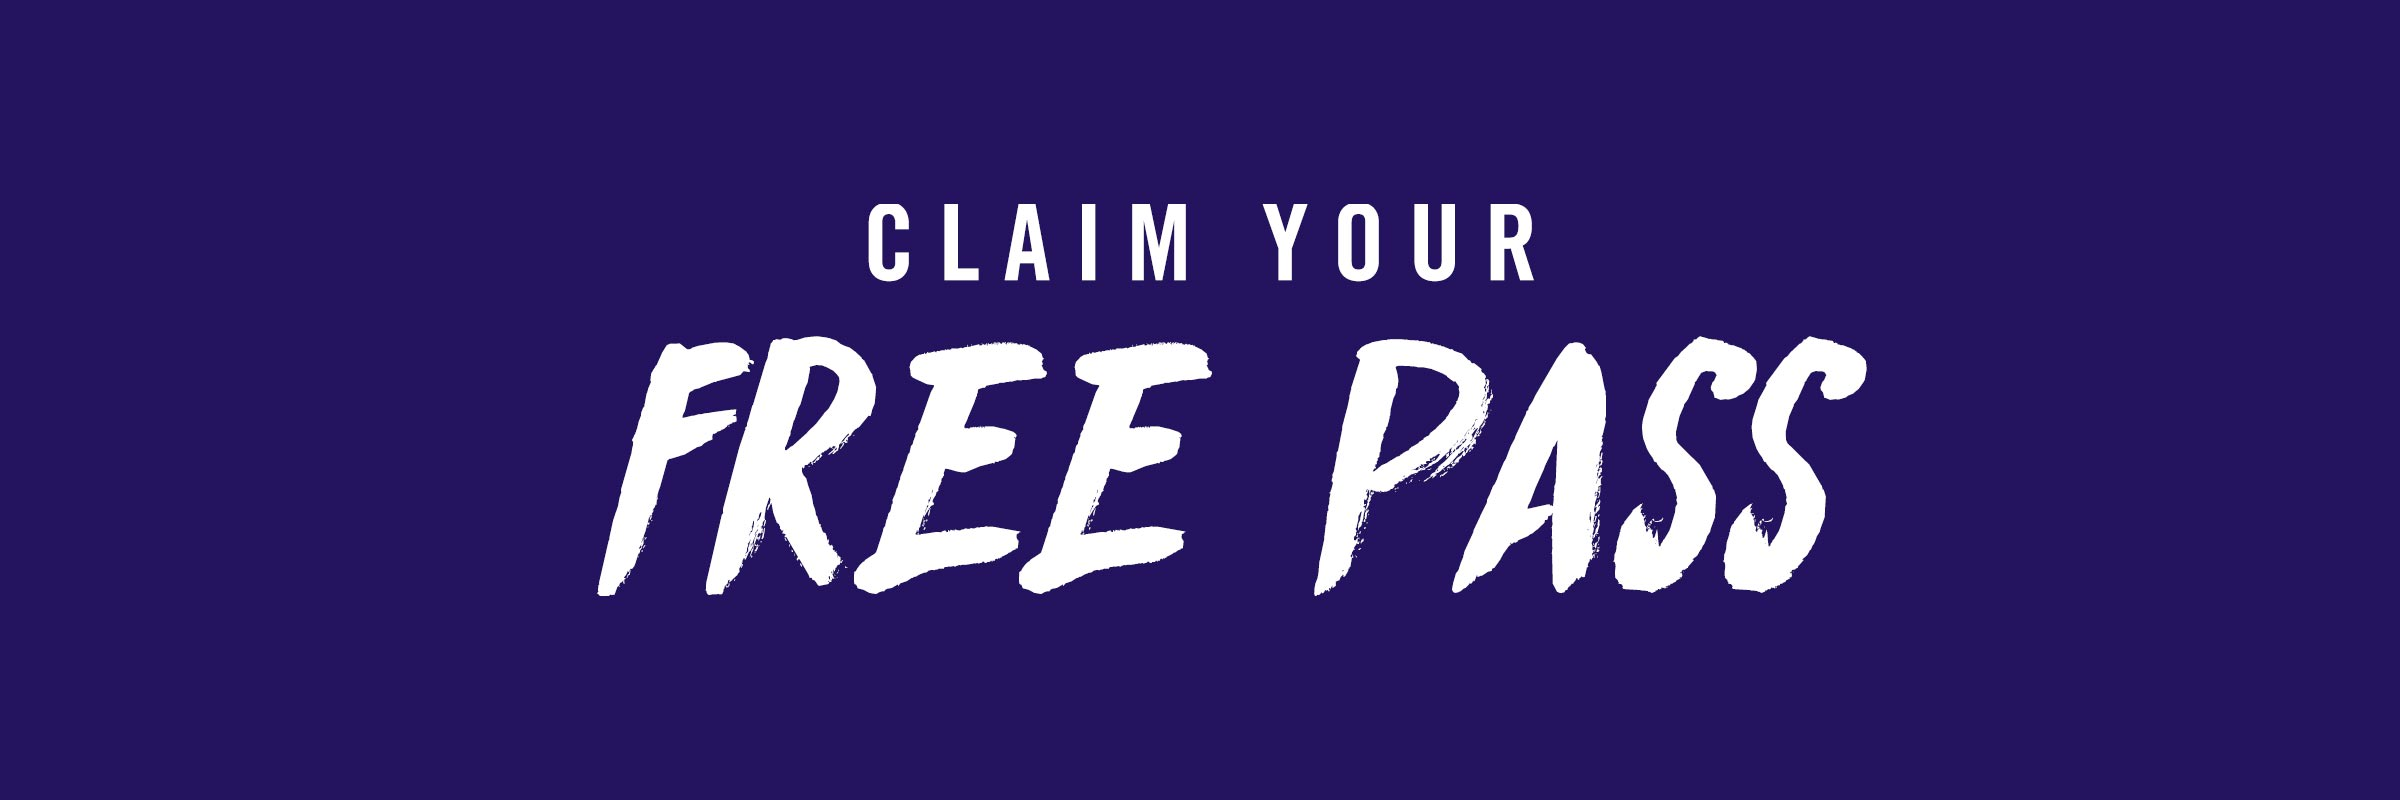 Claim Your Free Pass